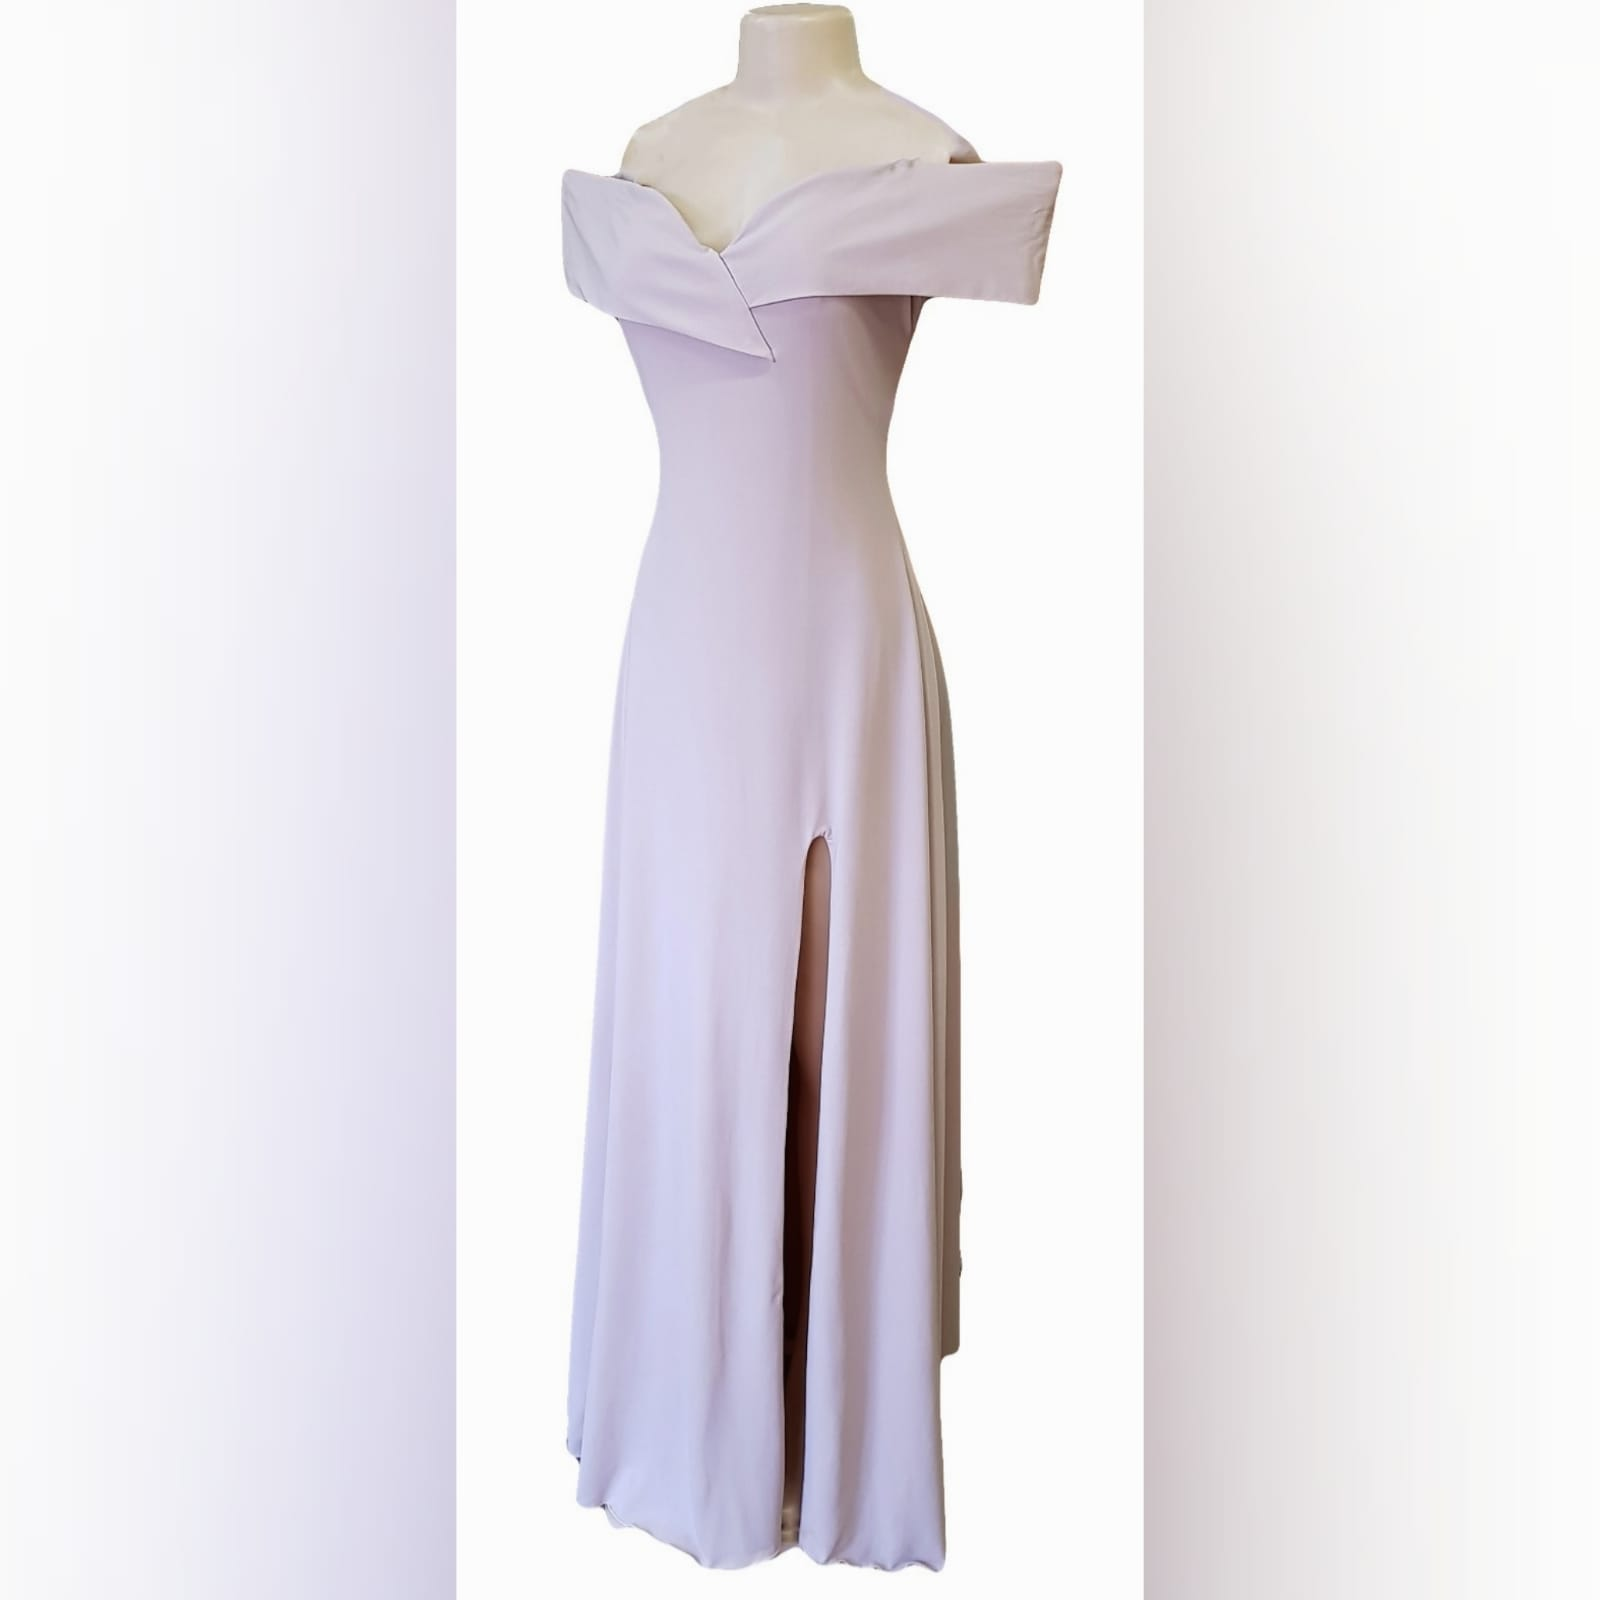 "Simple elegant nude long prom dress 7 <blockquote>""always be a first rate version of yourself and not a second rate version of someone else"" judy garland</blockquote>simple elegant nude long prom dress with an off shoulder cross bust neckline and a slit. A gorgeous design that can be worn to several occasions due to its simplicity."